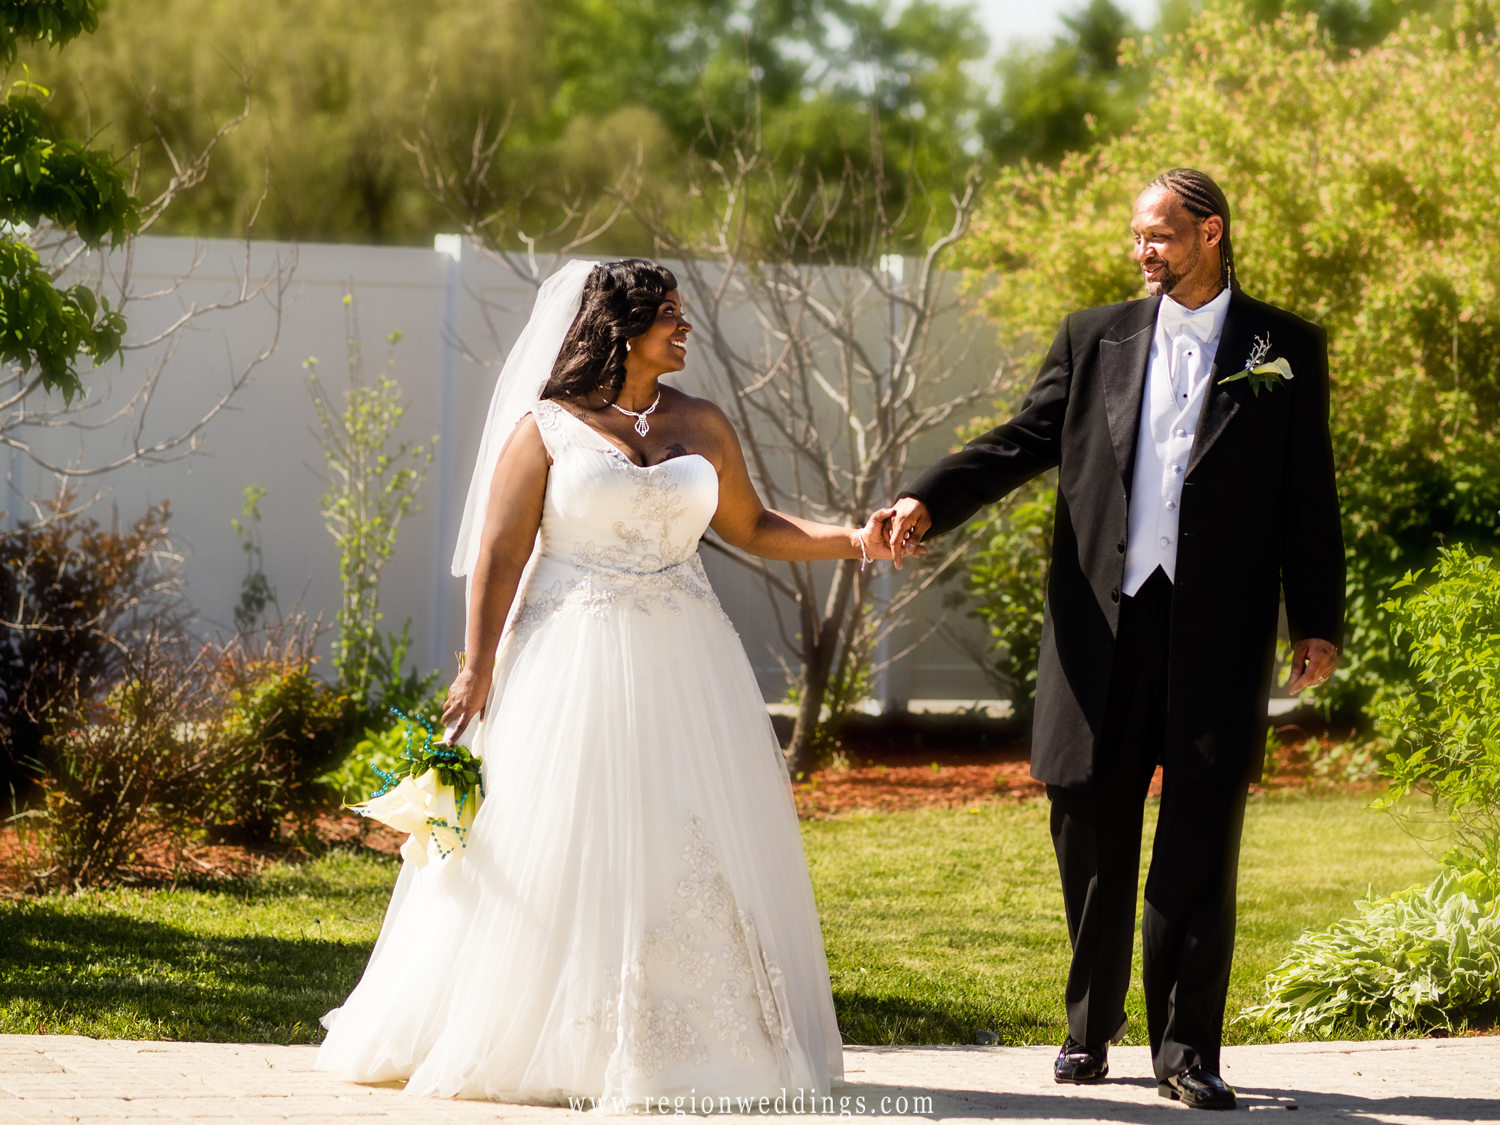 A newly married couple takes a stroll in the outdoor area at The Patrician in Schererville, IN.